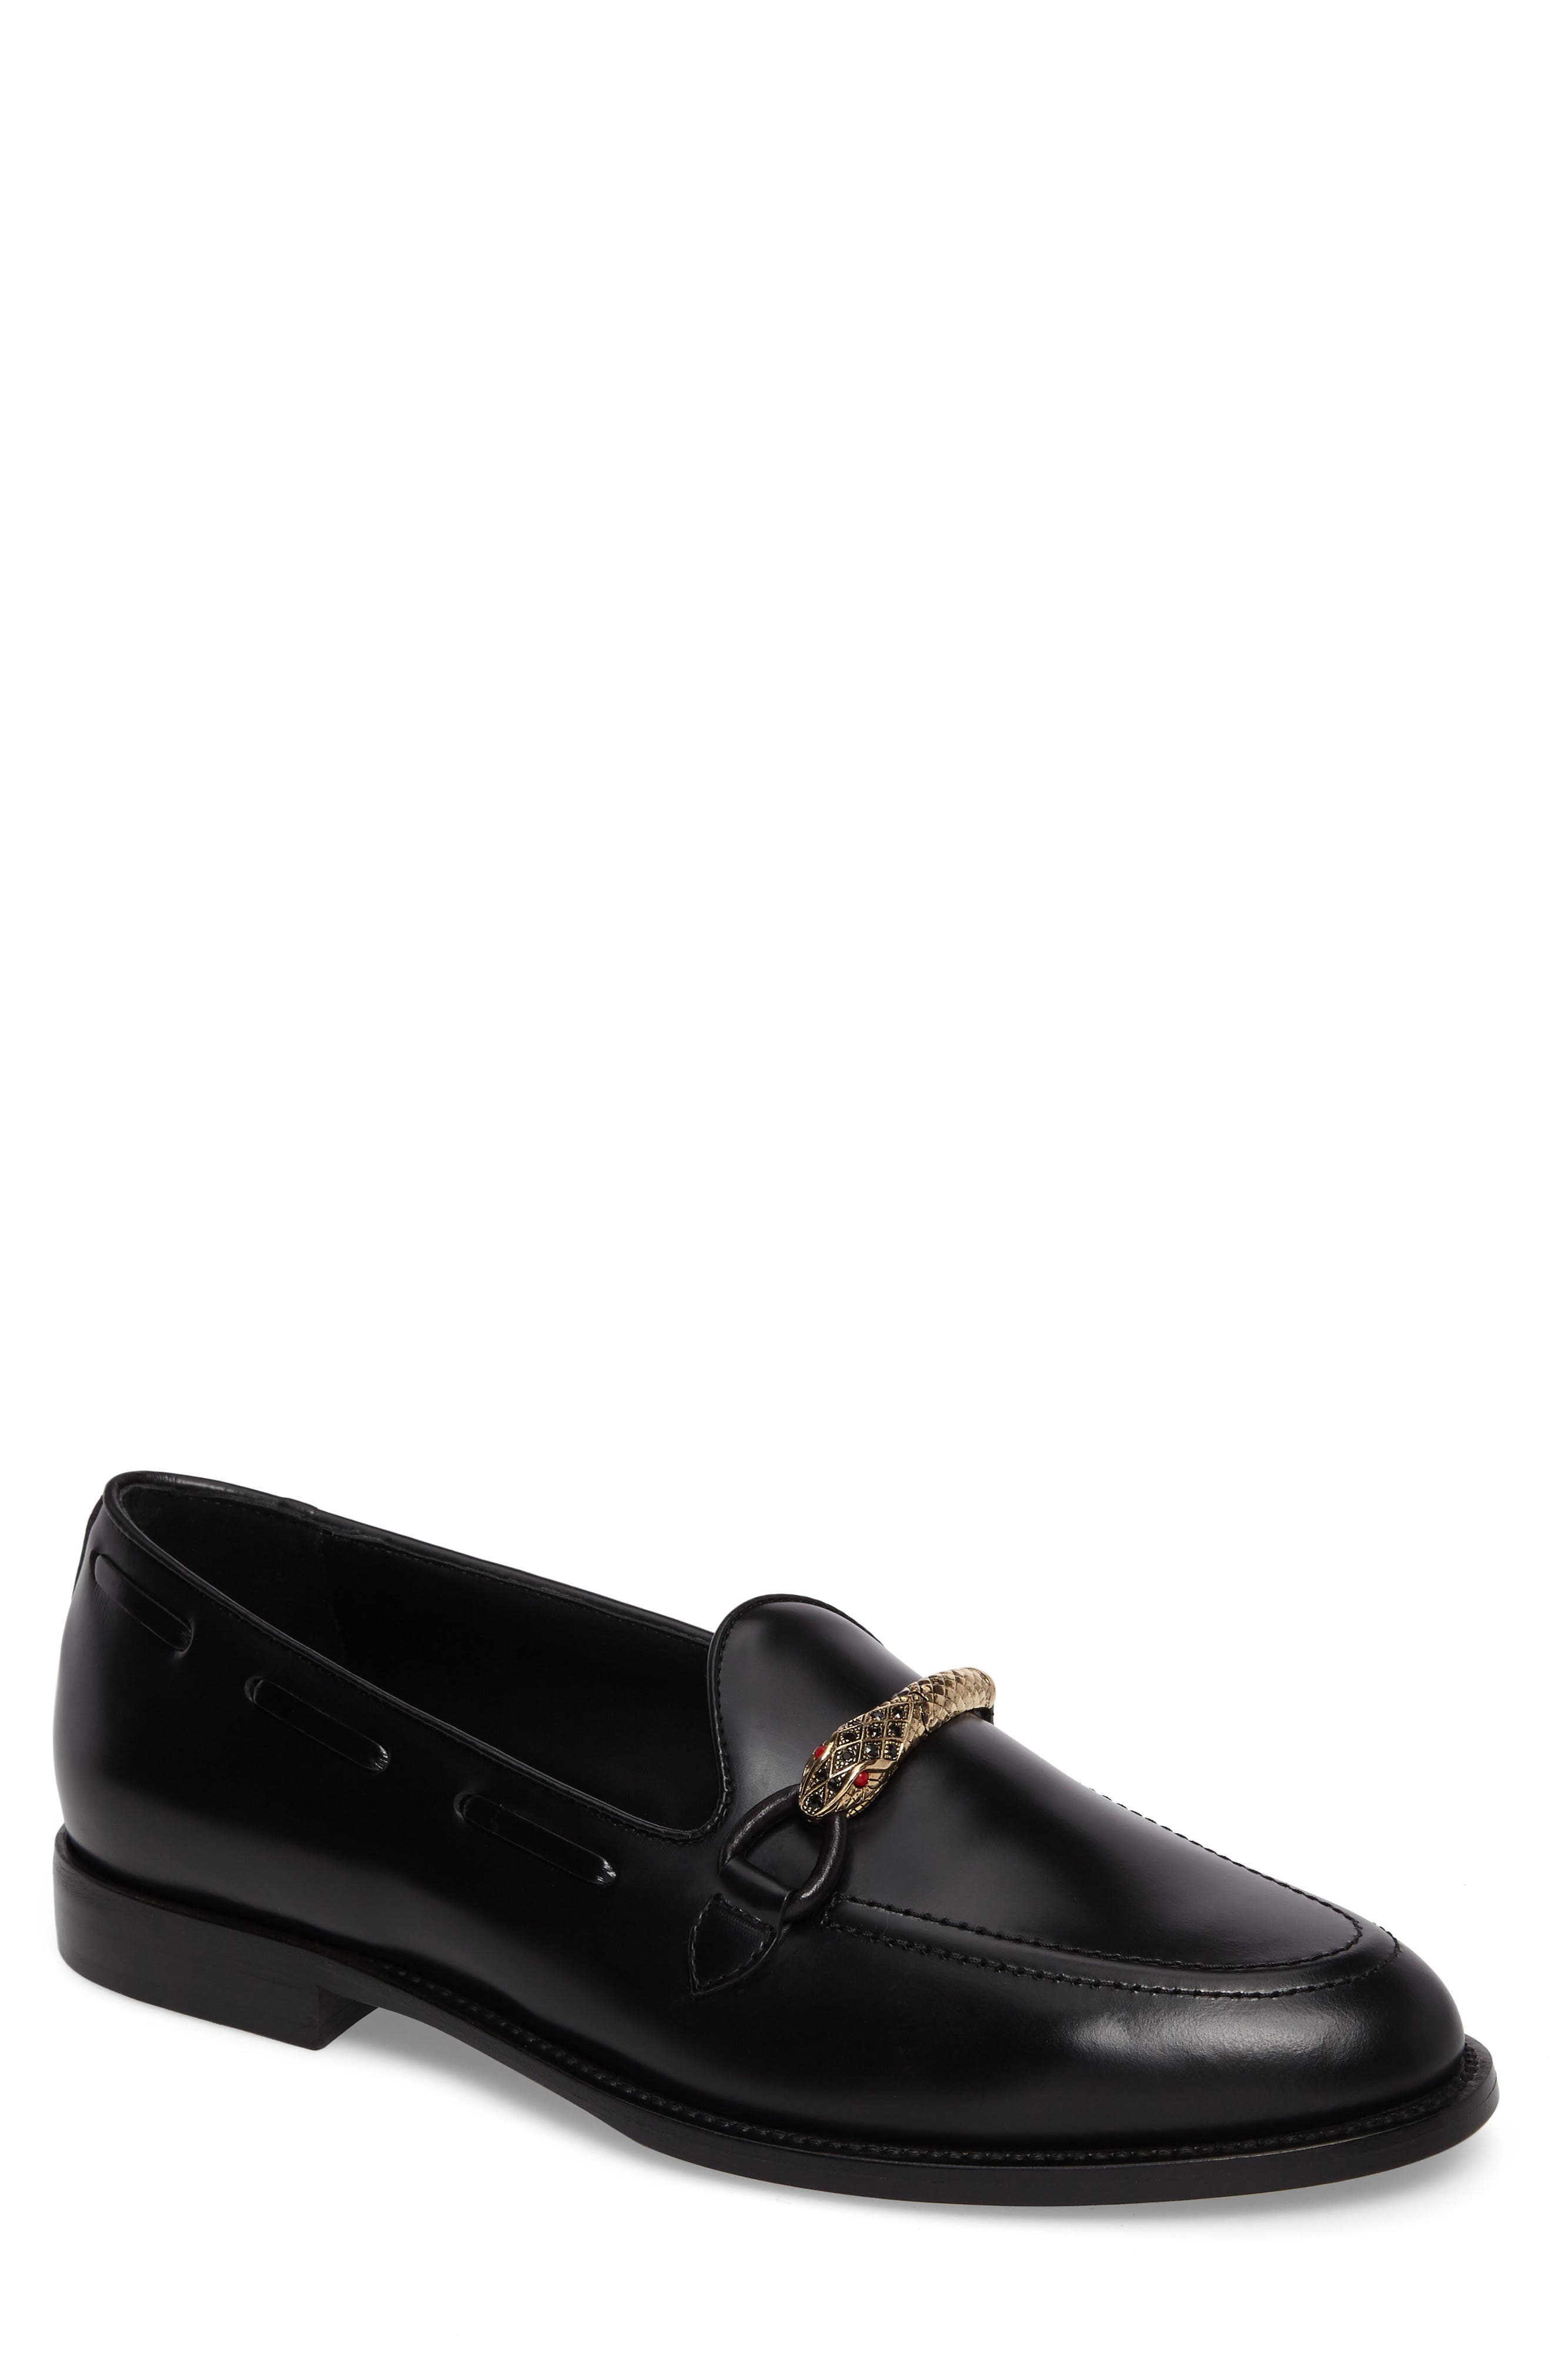 Serpent Bit Loafer,                             Main thumbnail 1, color,                             Nero Leather